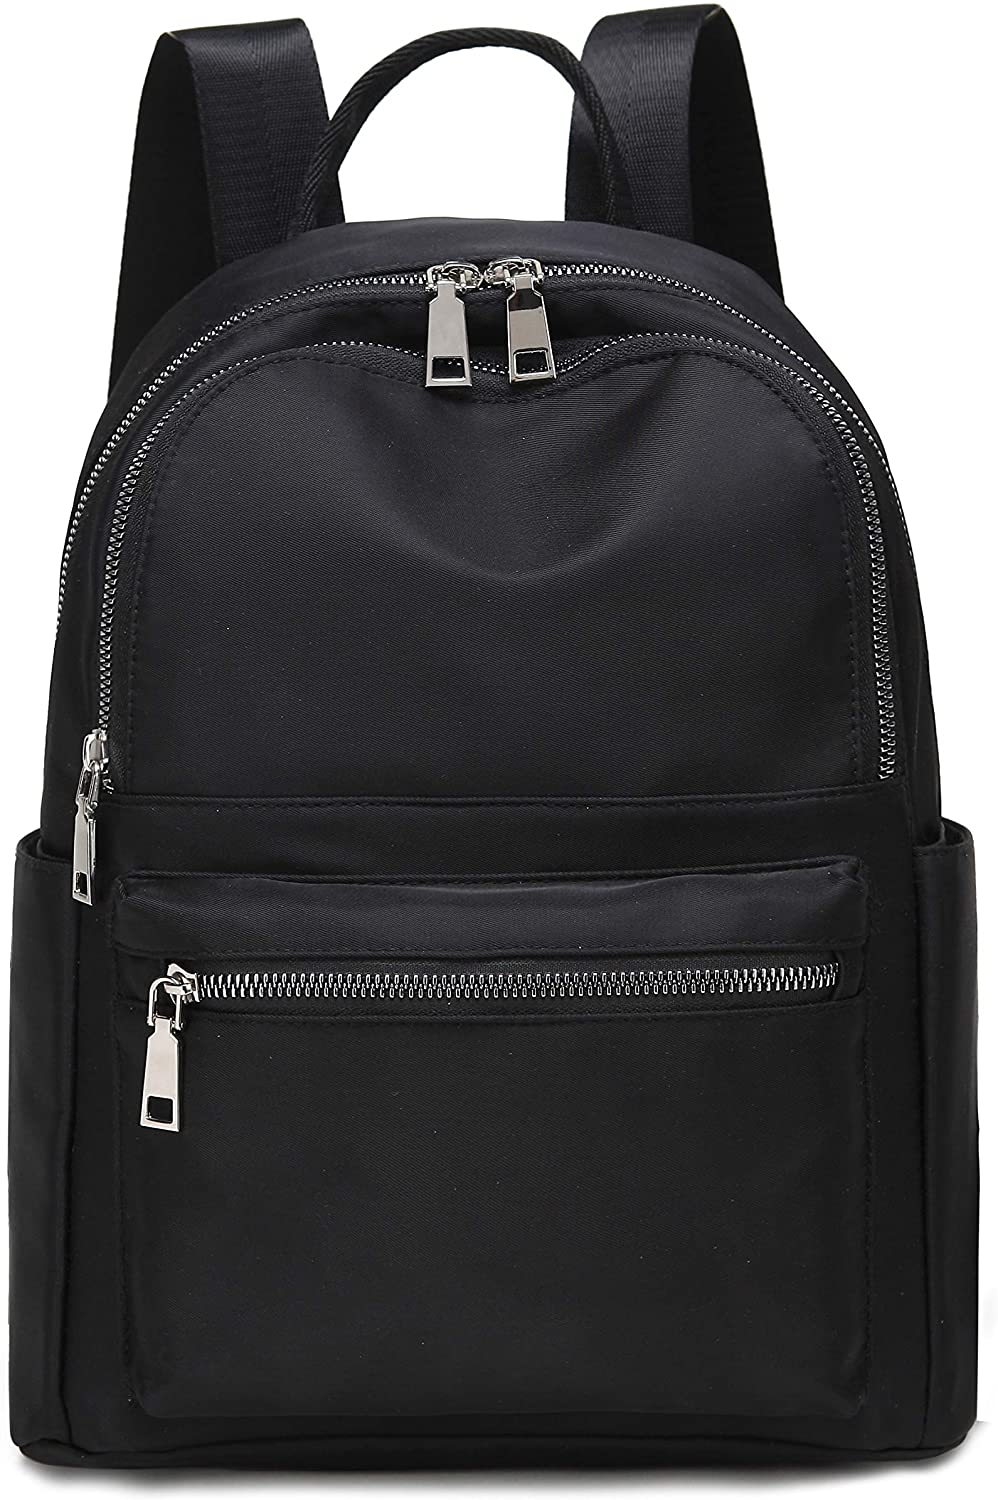 Fashion Backpack For Women Medium Size Black for Women Girls Lightweight and Water Resistant